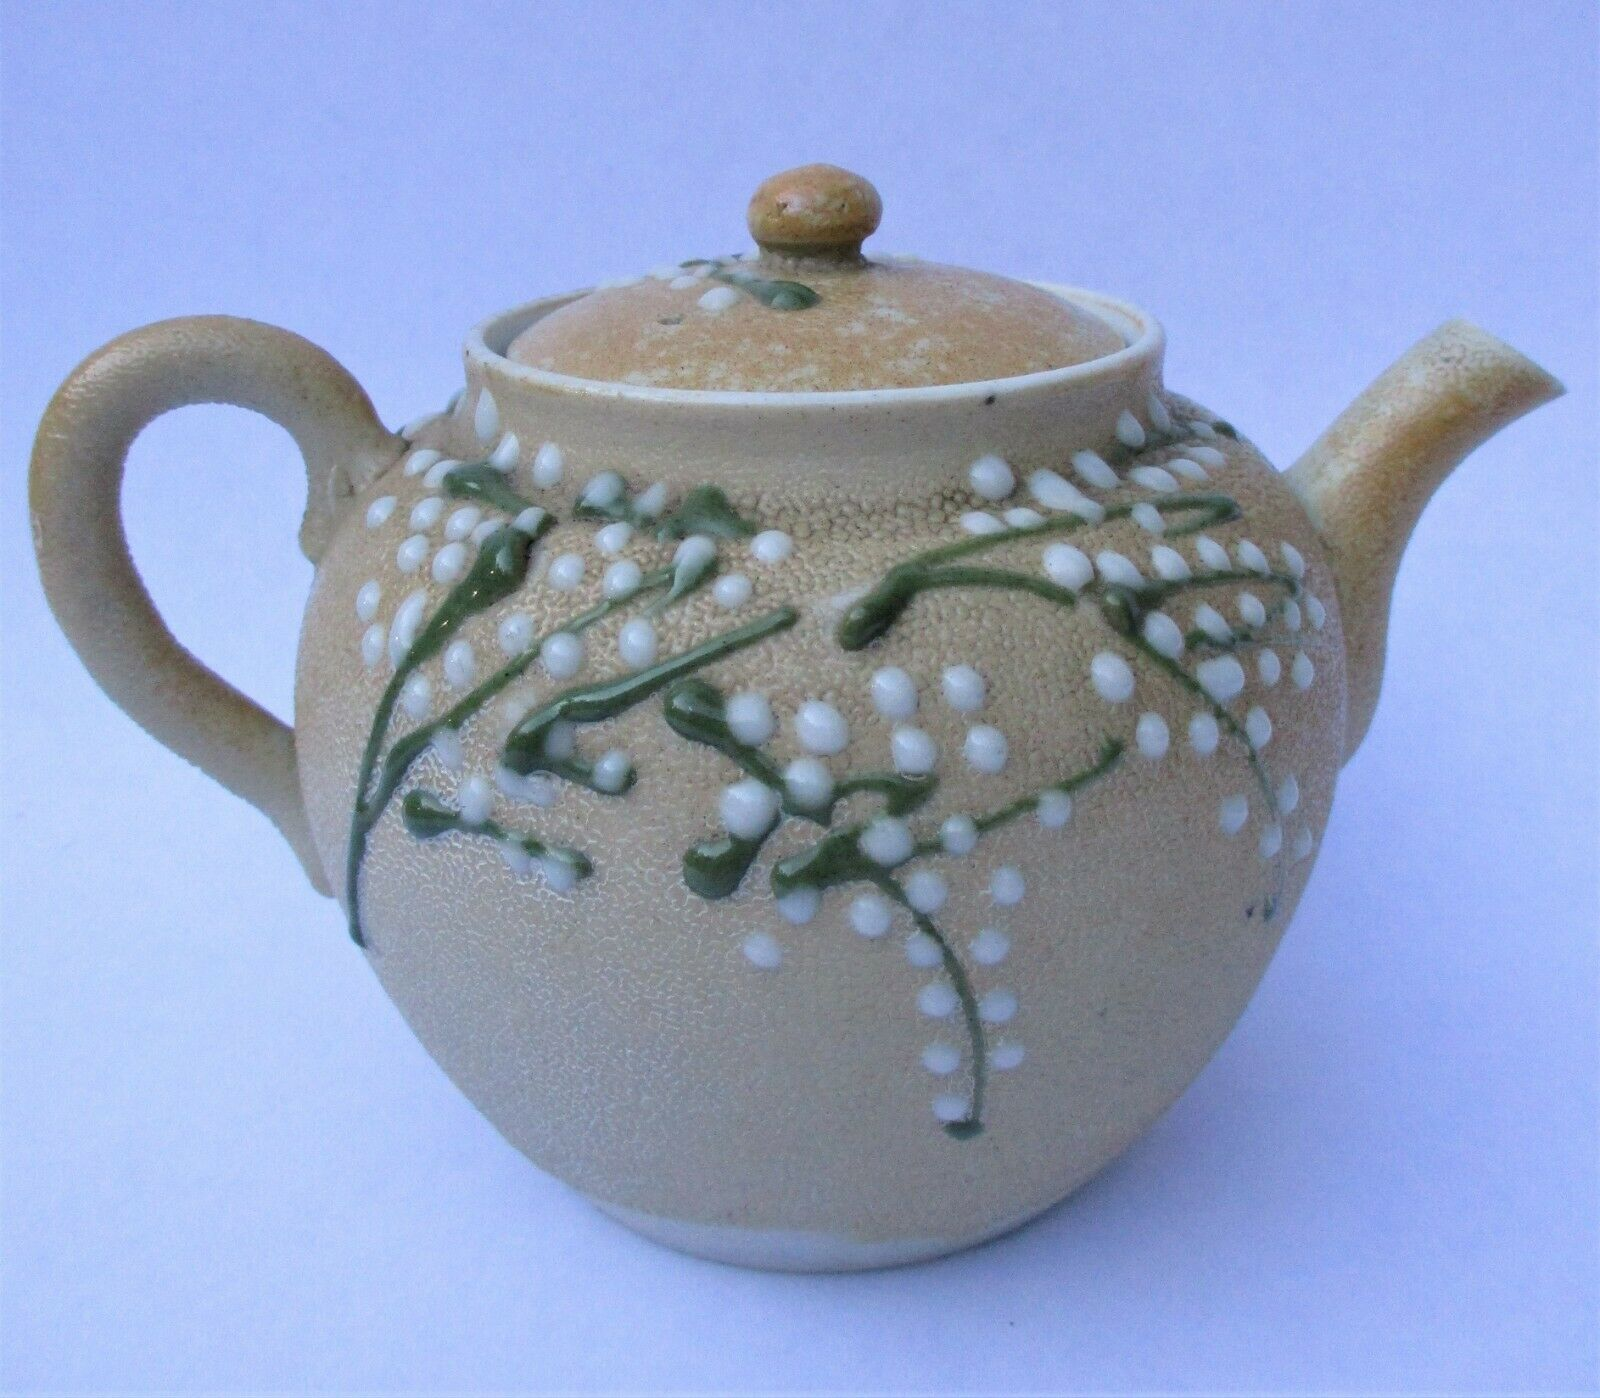 ANTIQUE JAPANESE TEAPOT BANKO POTTERY SHARKSKIN GLAZE BEADED FLORAL MORIAGE - $33.50